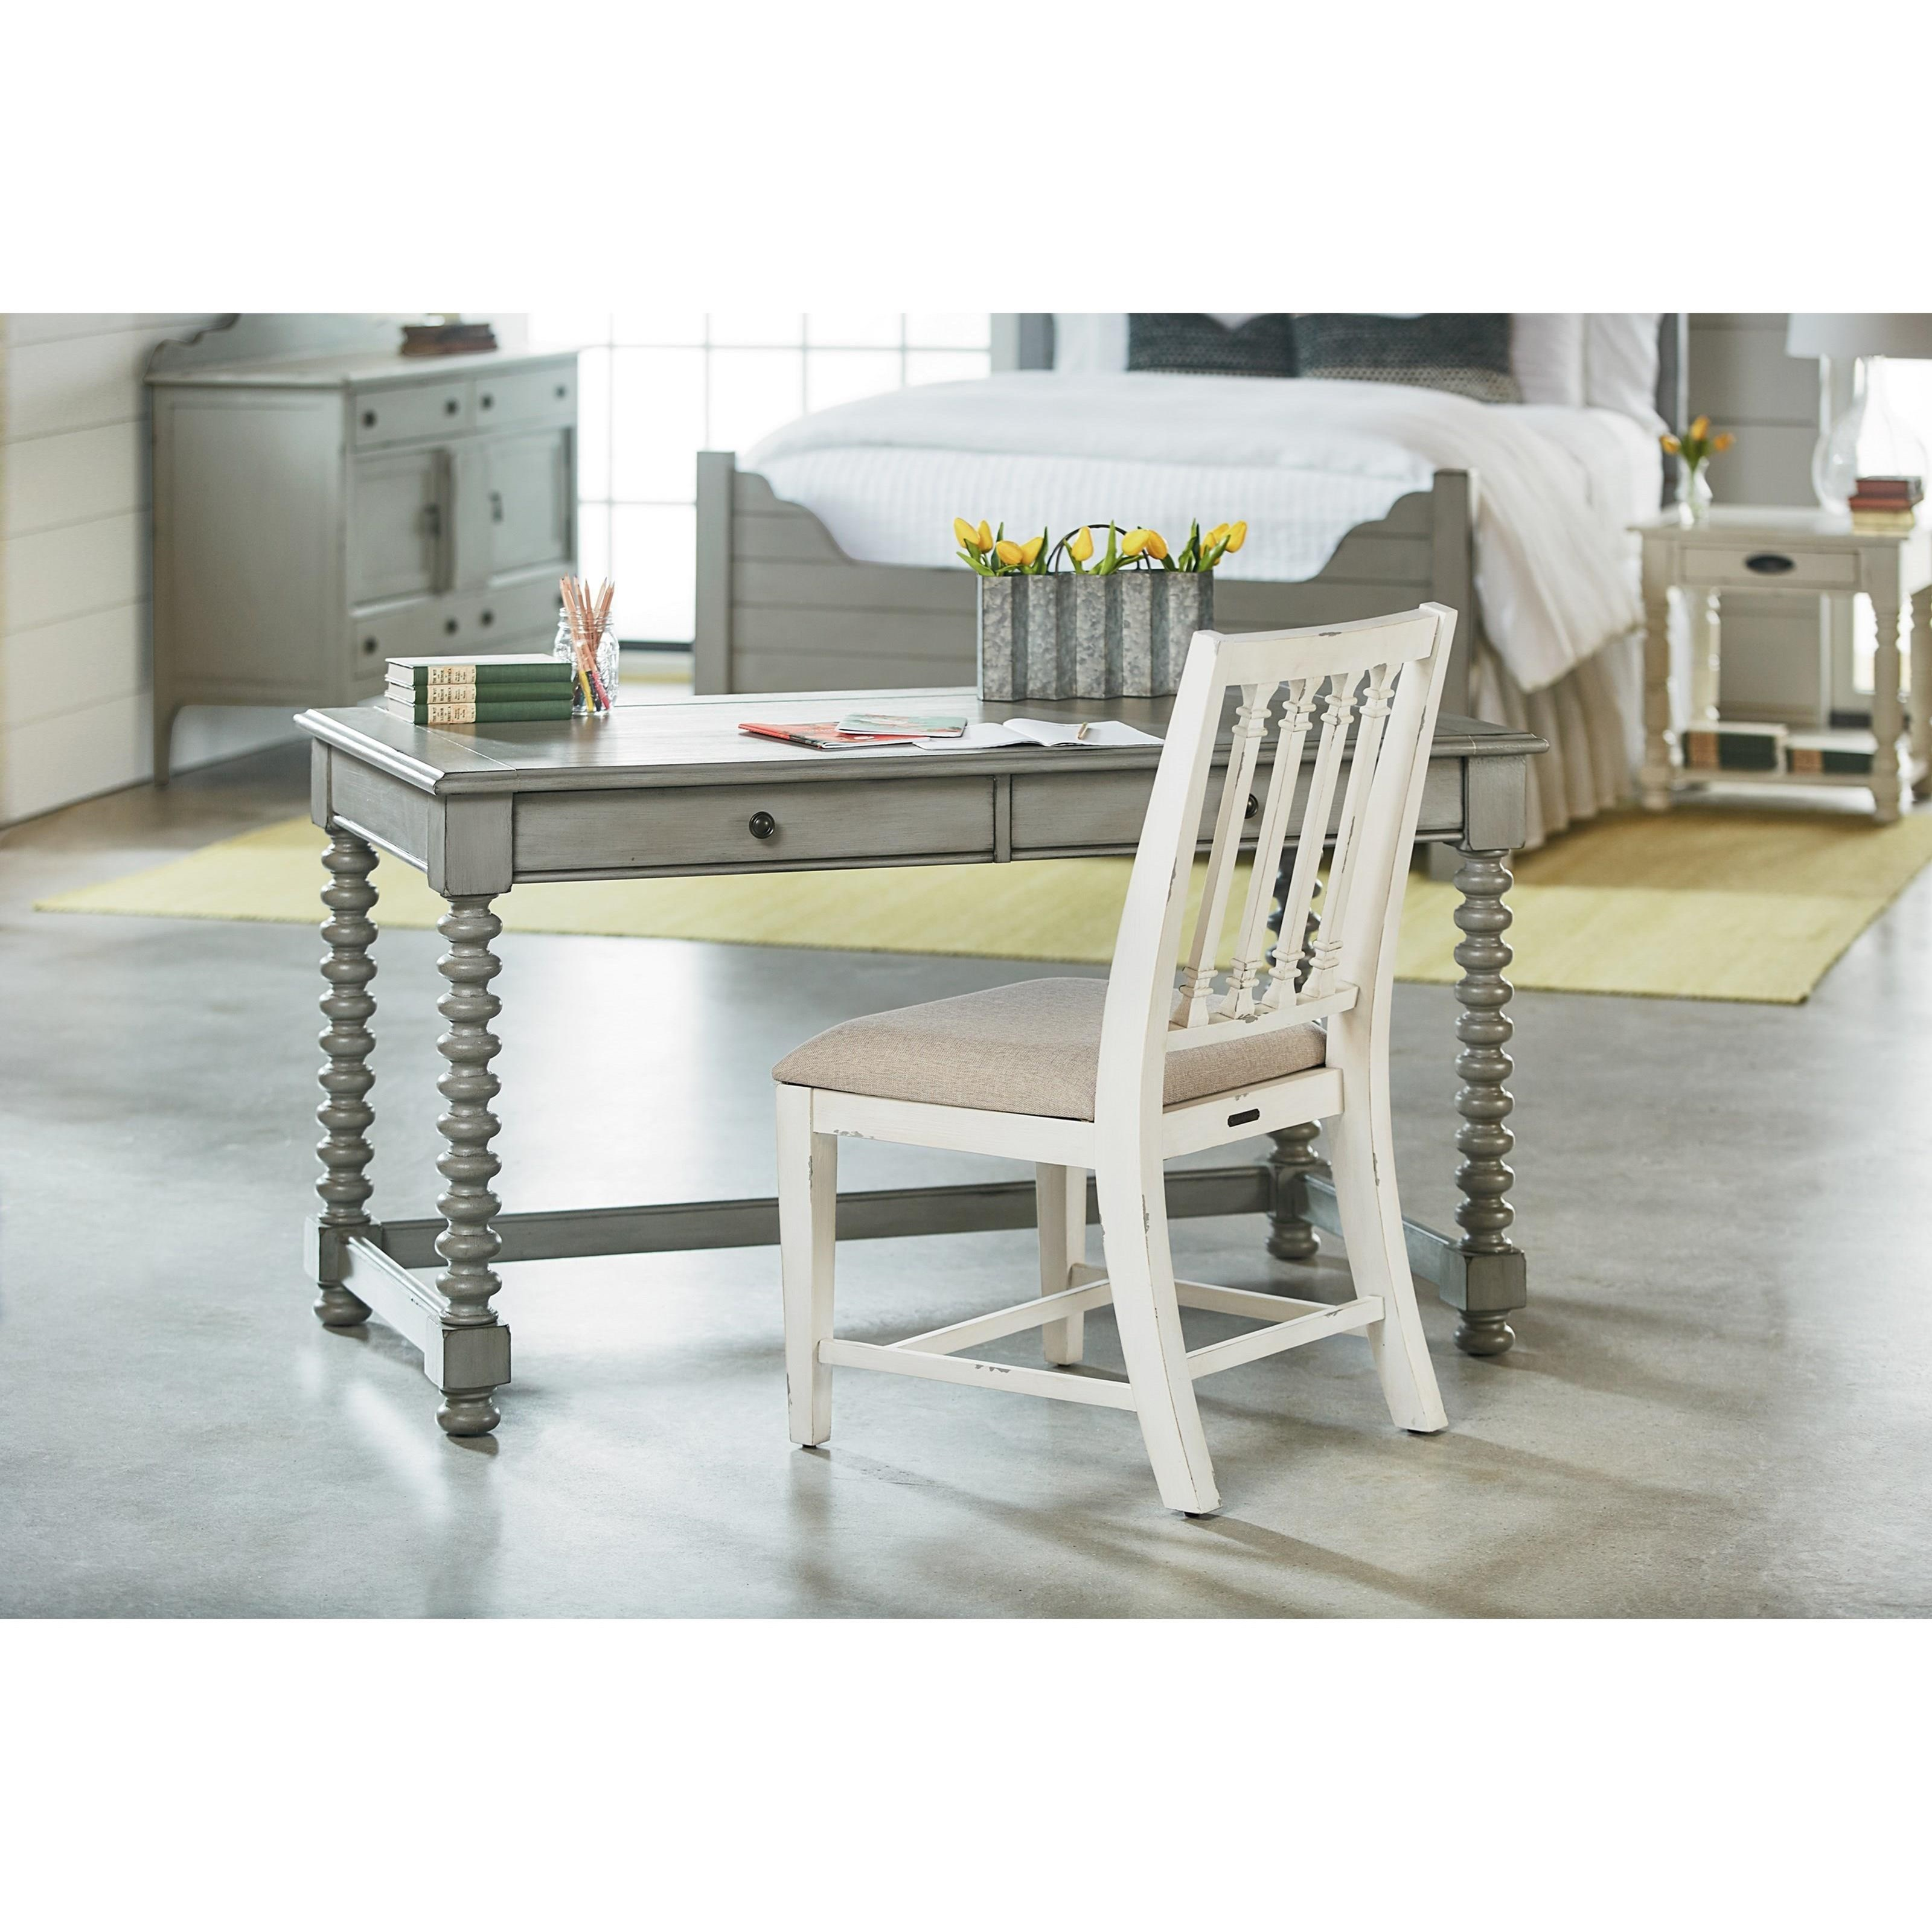 Dove Grey Desk With Spool Legs By Magnolia Home By Joanna